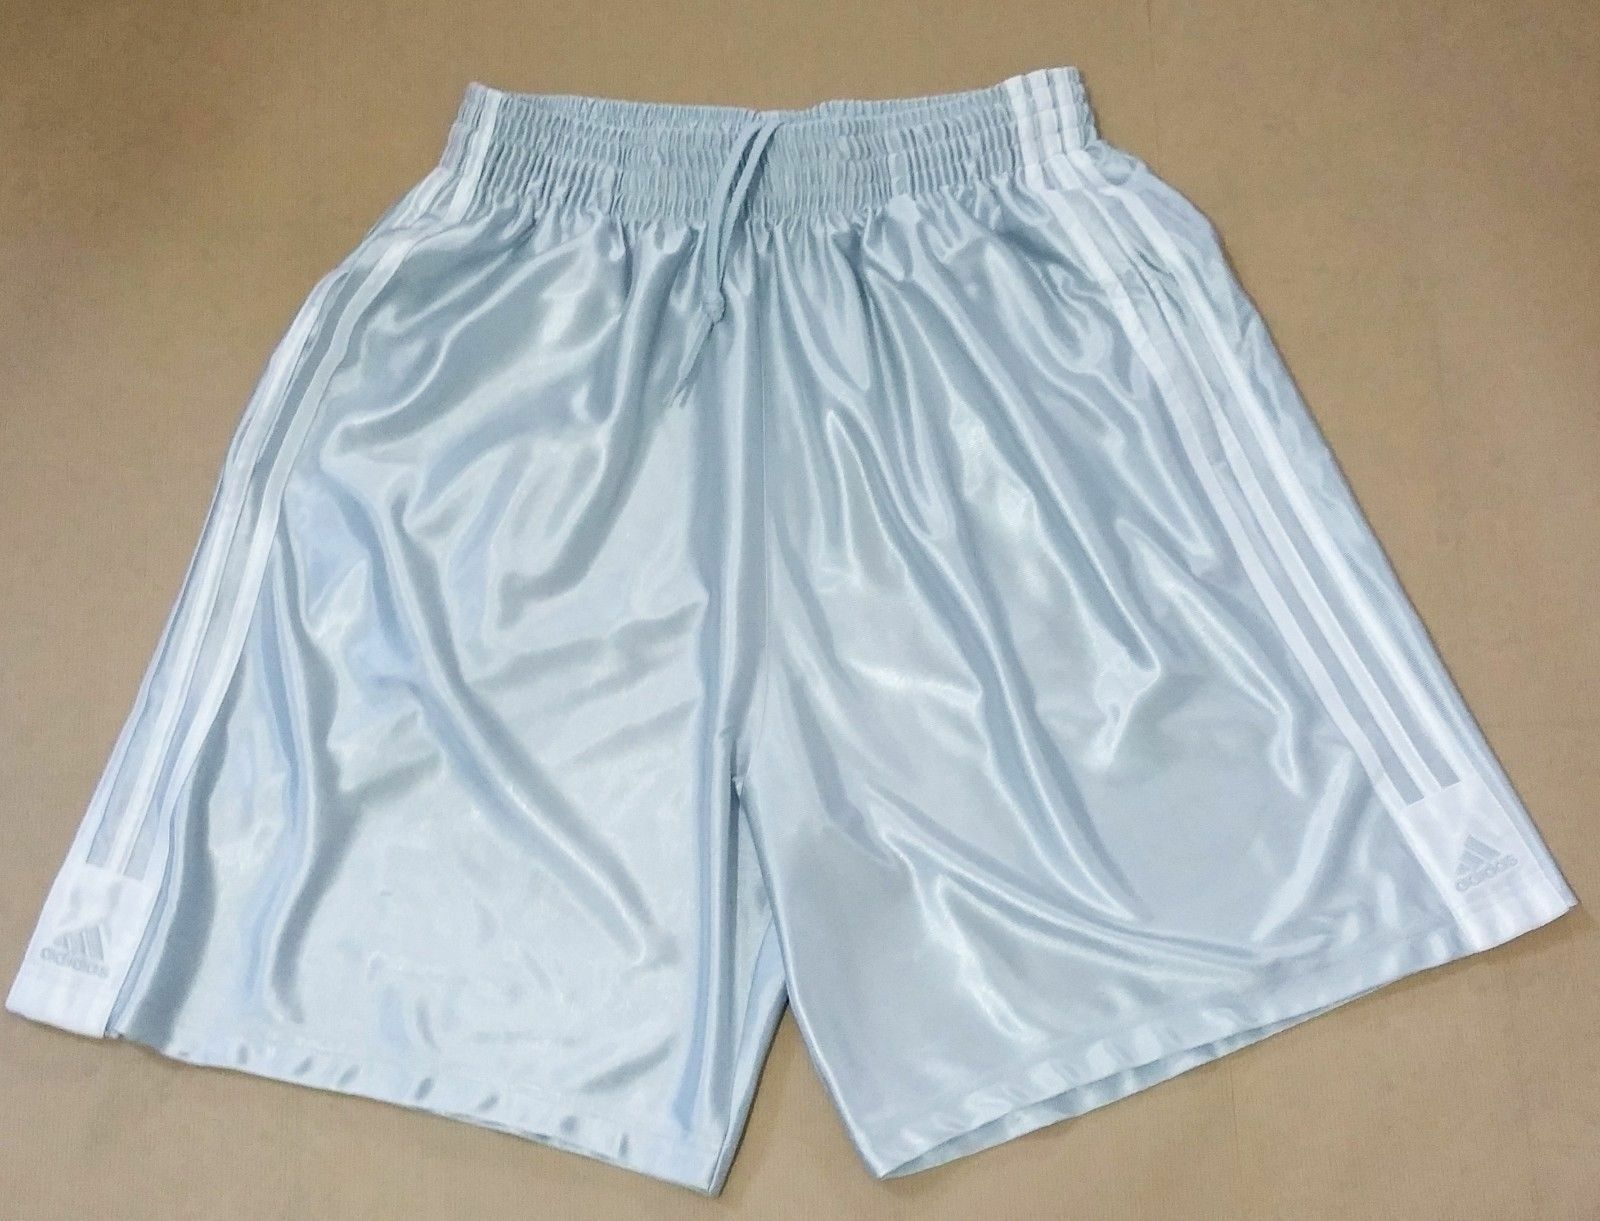 697f94adb7 Adidas Men Special Shorts Basketball (242144) 100% Authentic Size L New